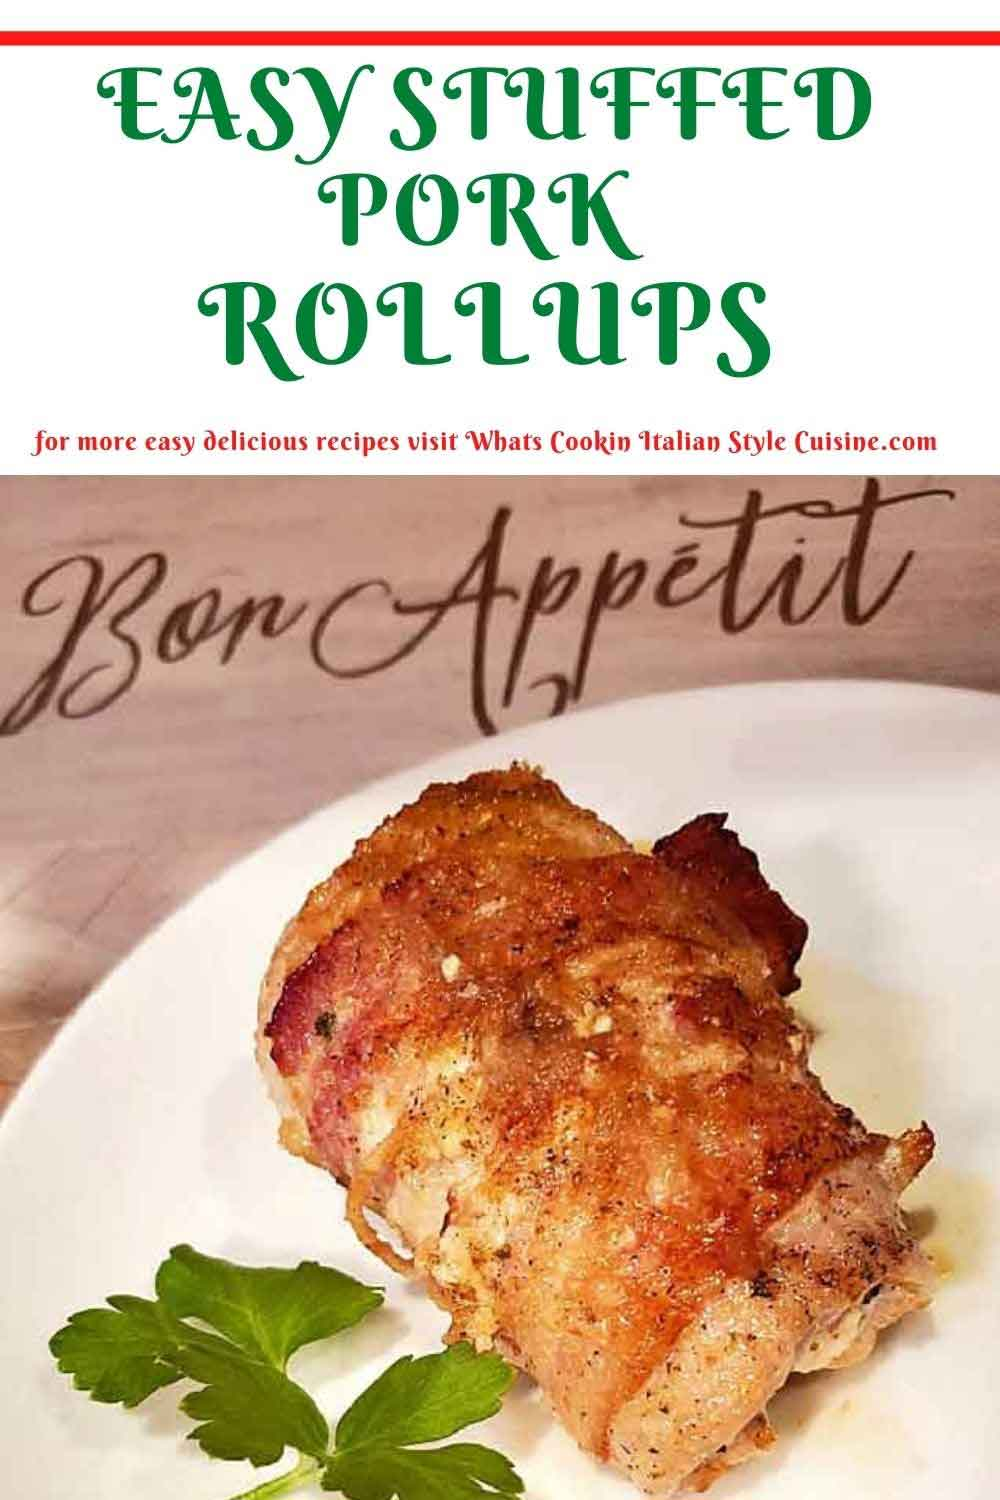 these are stuffed pork tenderloin and how to make them recipe in a pin for later